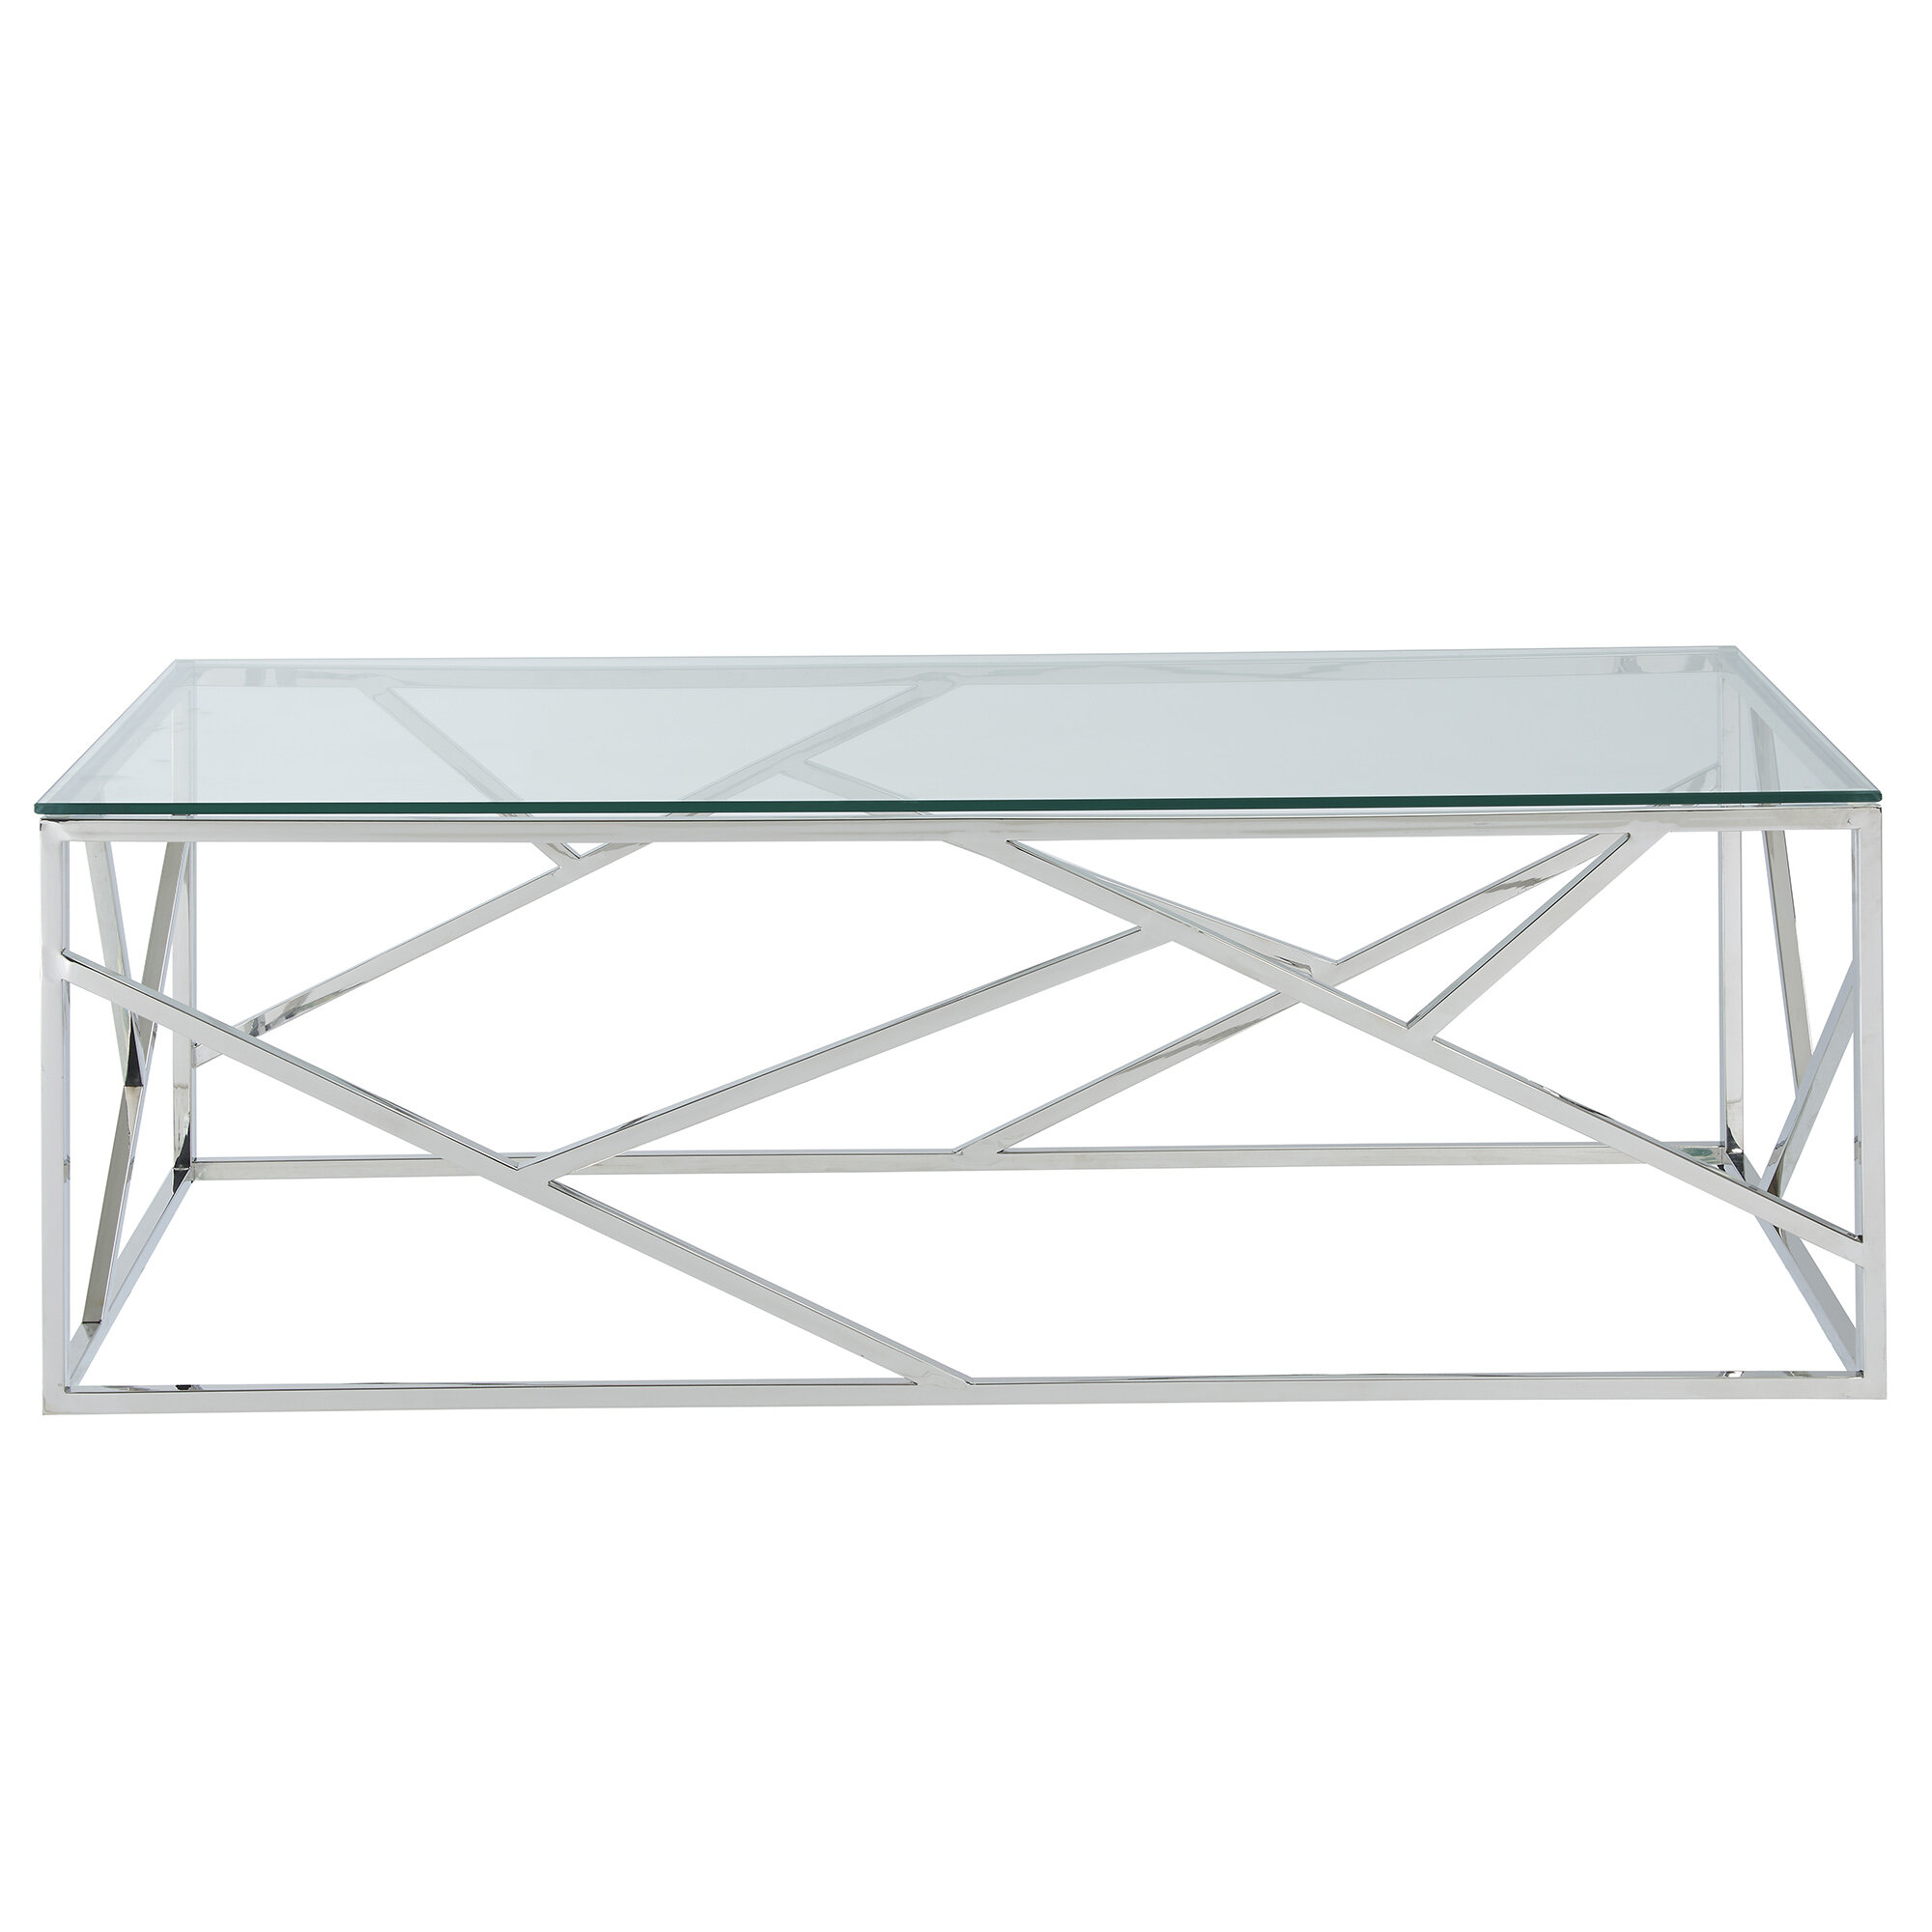 High Quality House Of Hampton Menahan Stainless Steel Coffee Table | Wayfair